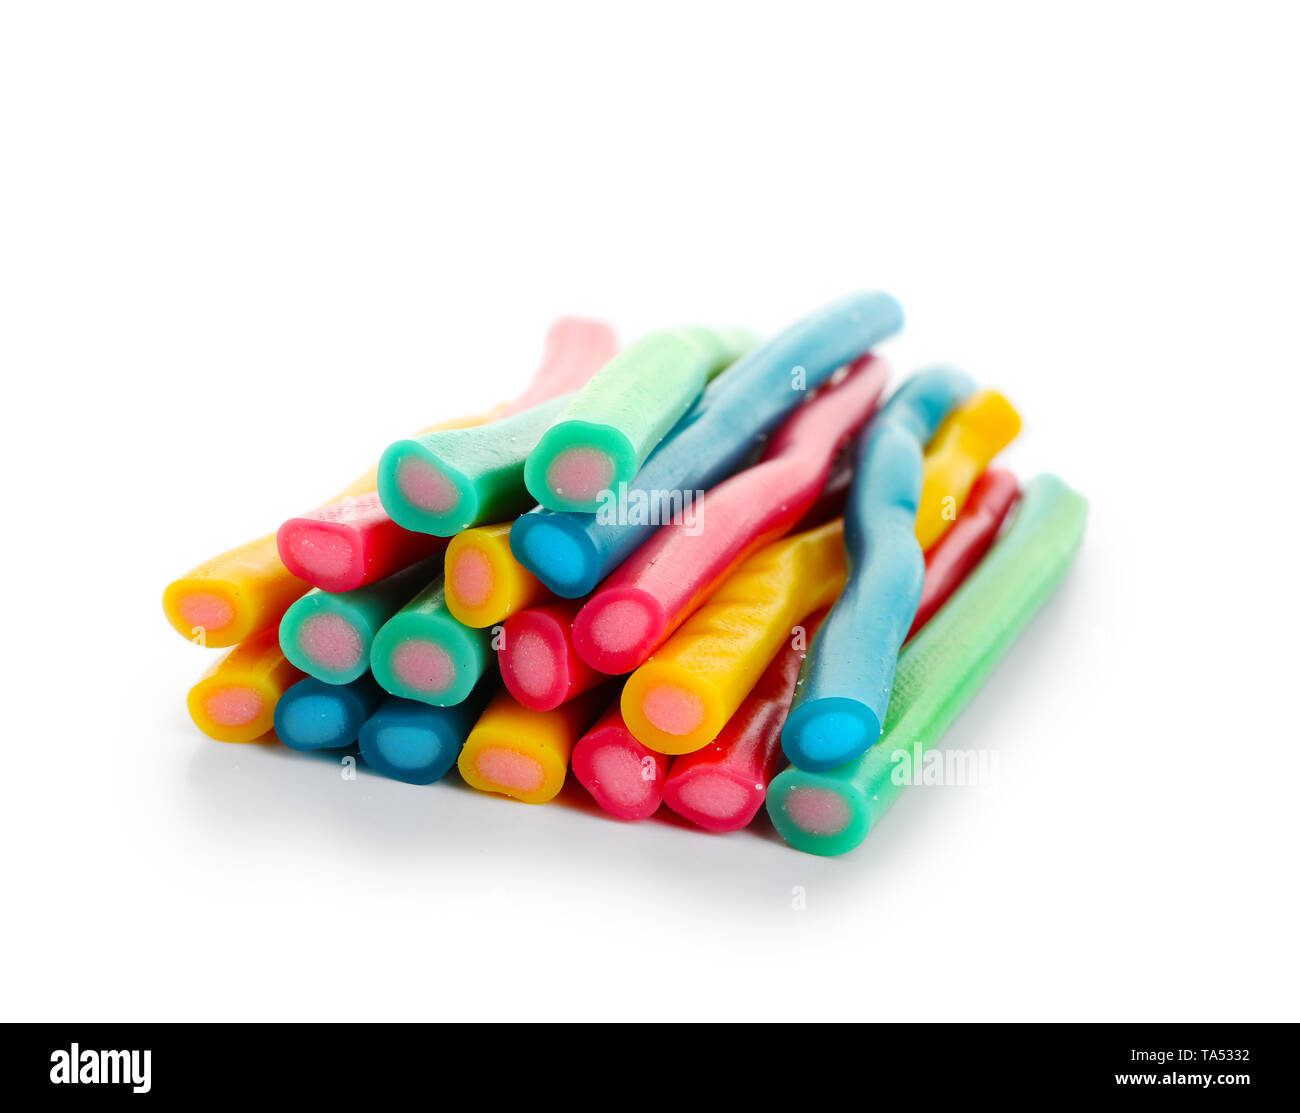 Sweet candy sticks on white background - Stock Image